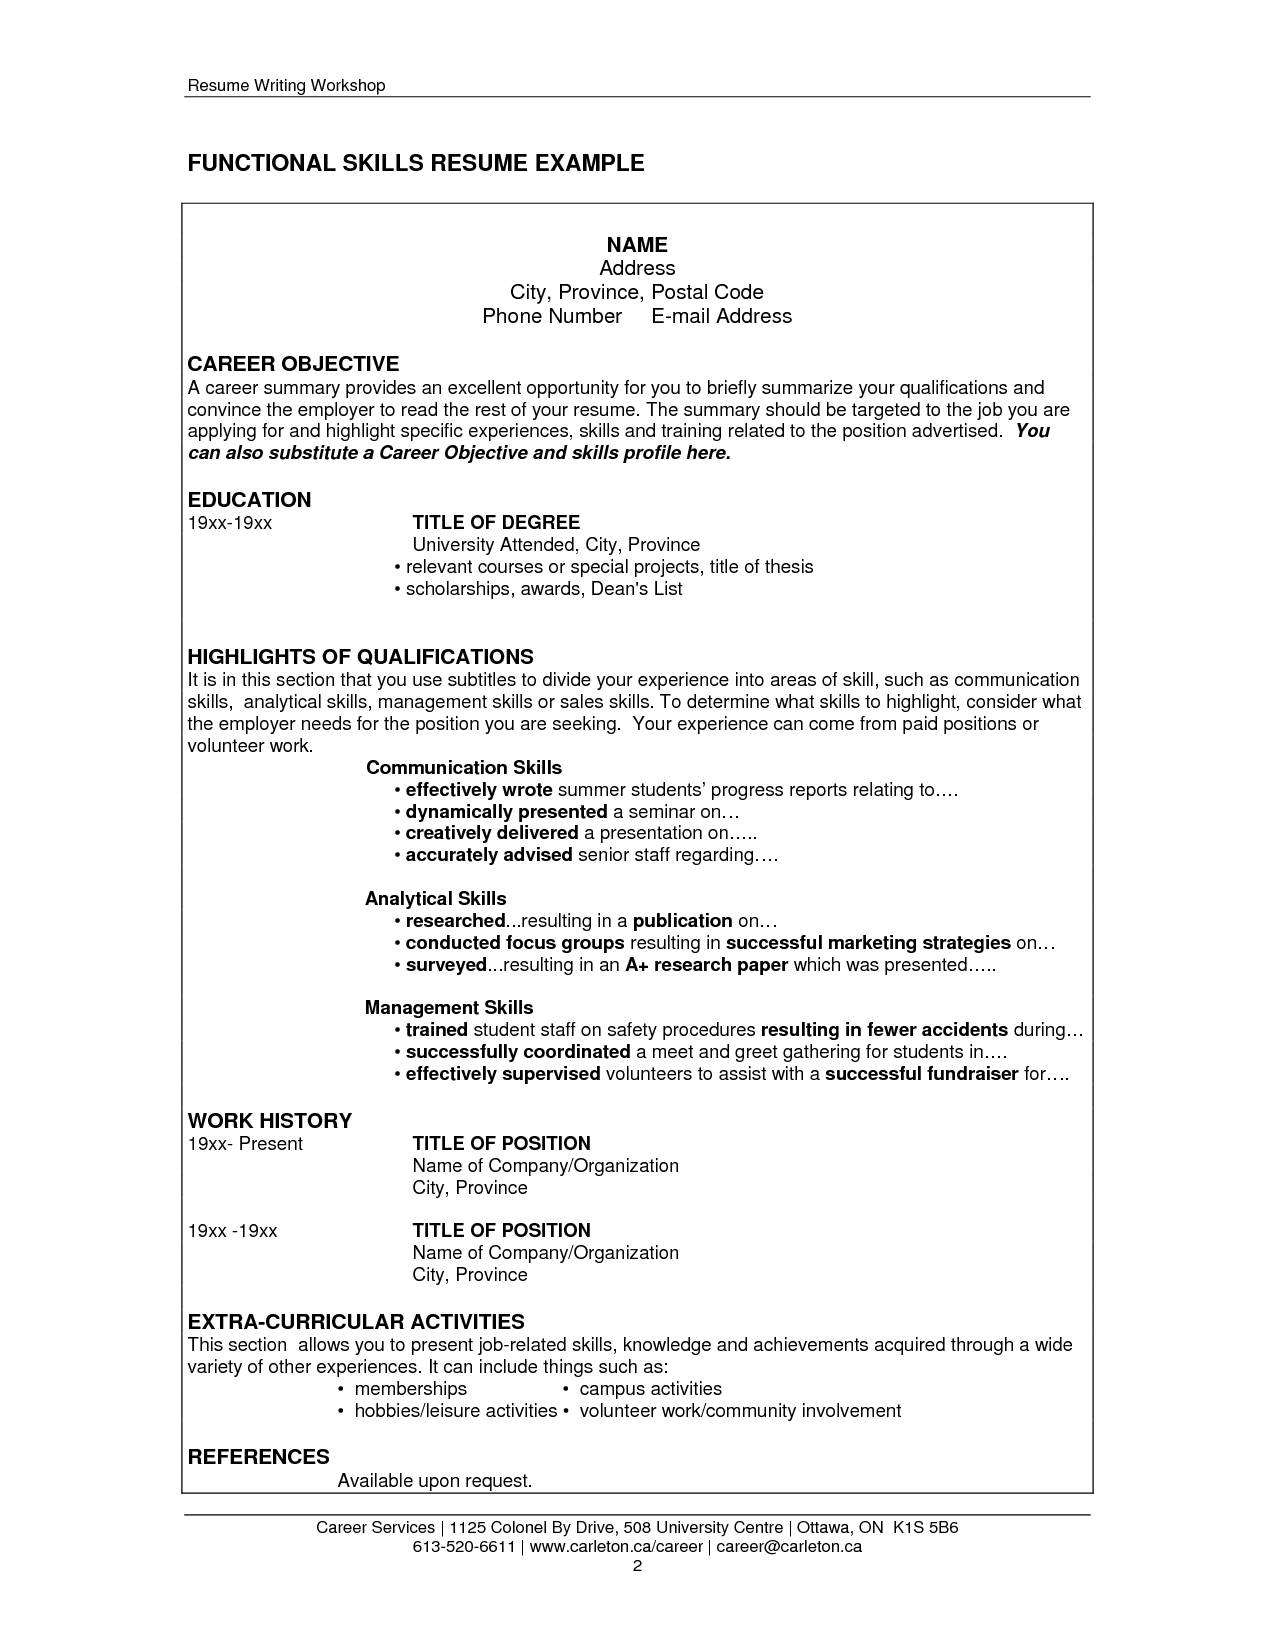 job skill examples for resumes - Caudit.kaptanband.co